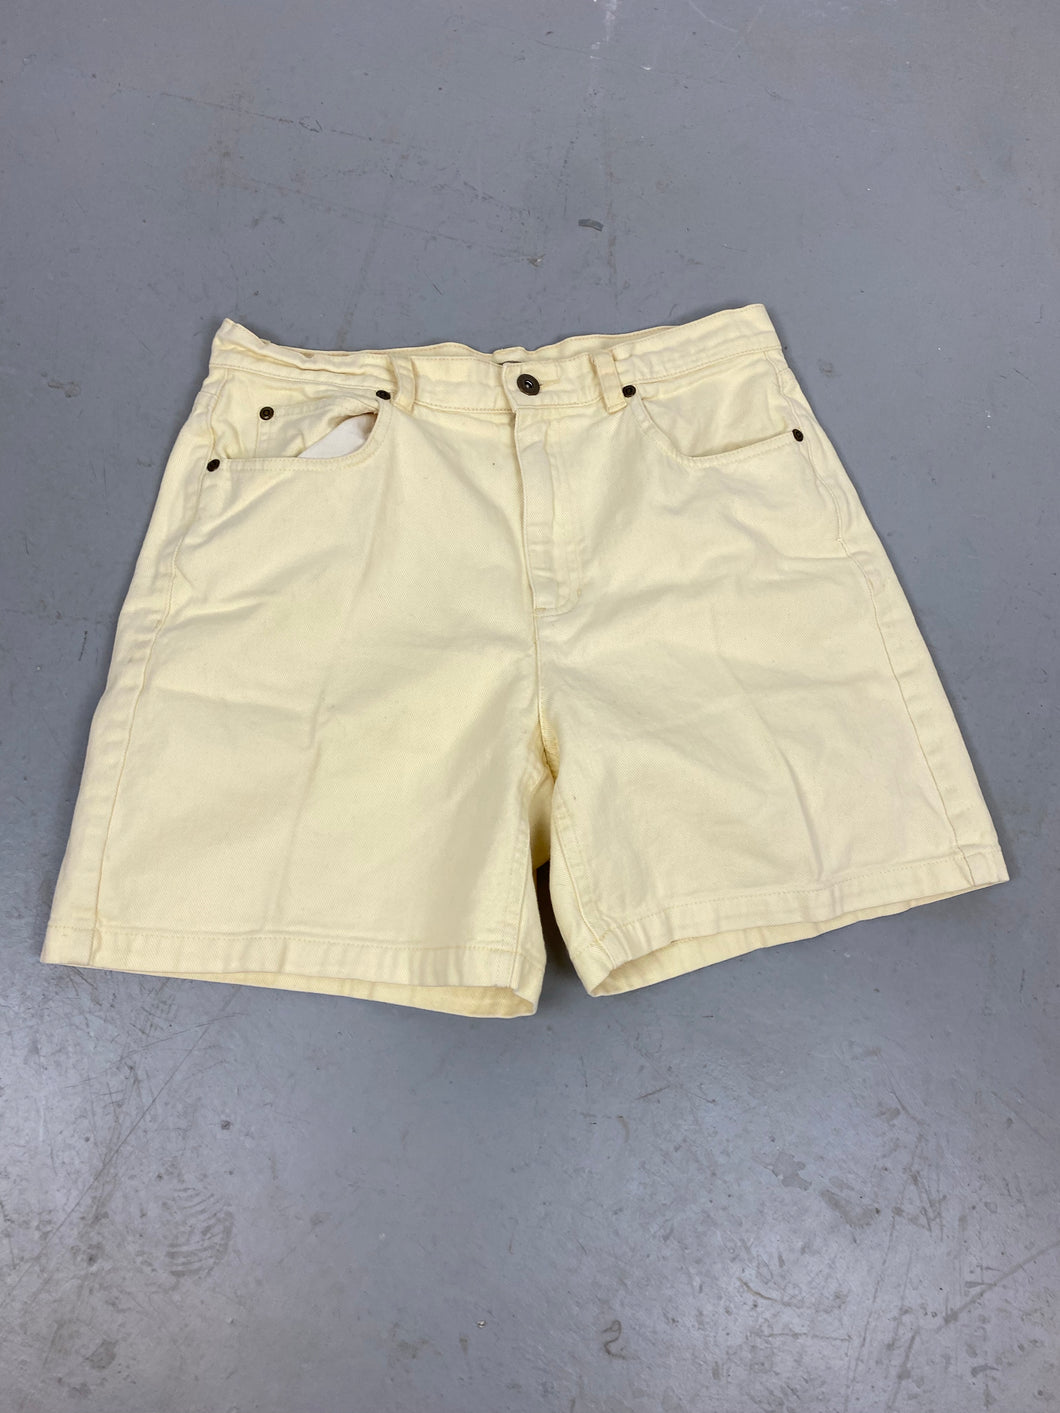 Vintage Creme high waisted shorts - 32in